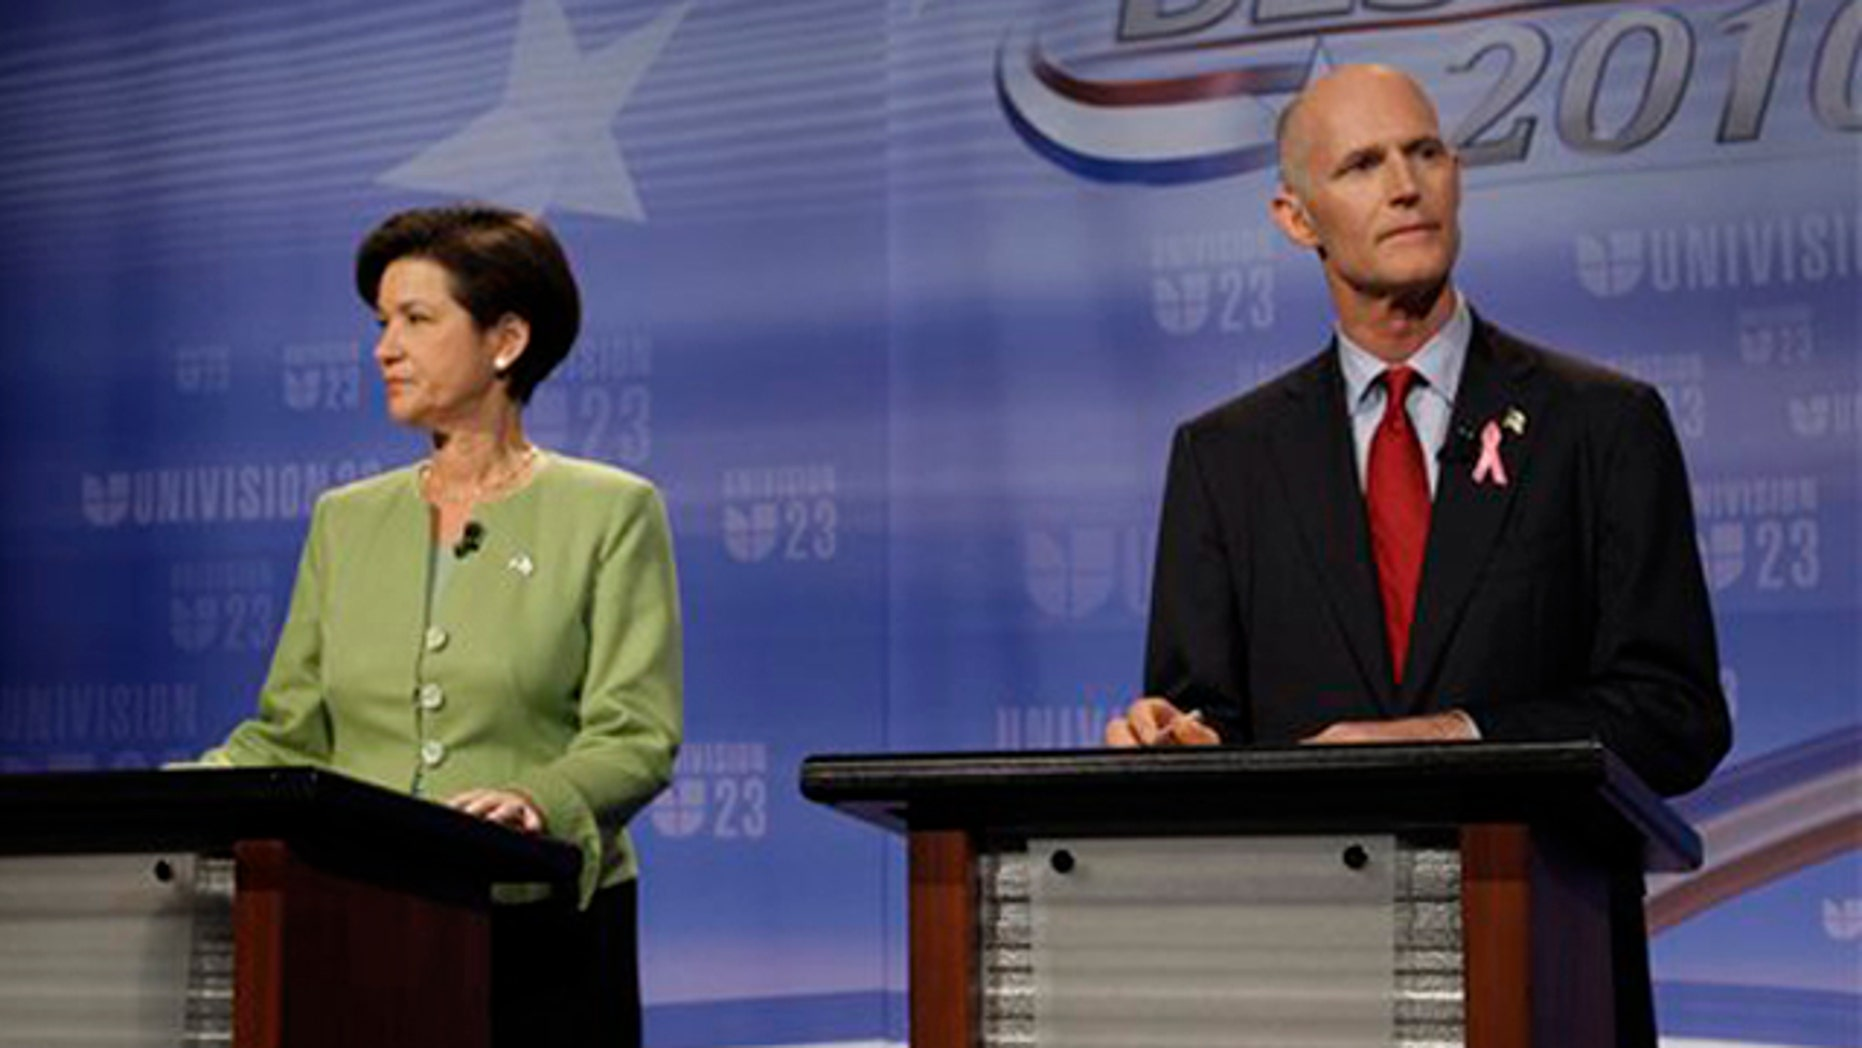 Candidates for Florida governor Alex Sink, left, and Rick Scott meet for their first face-to-face debate at Univision's studios in Miami Oct. 8. (AP Photo)